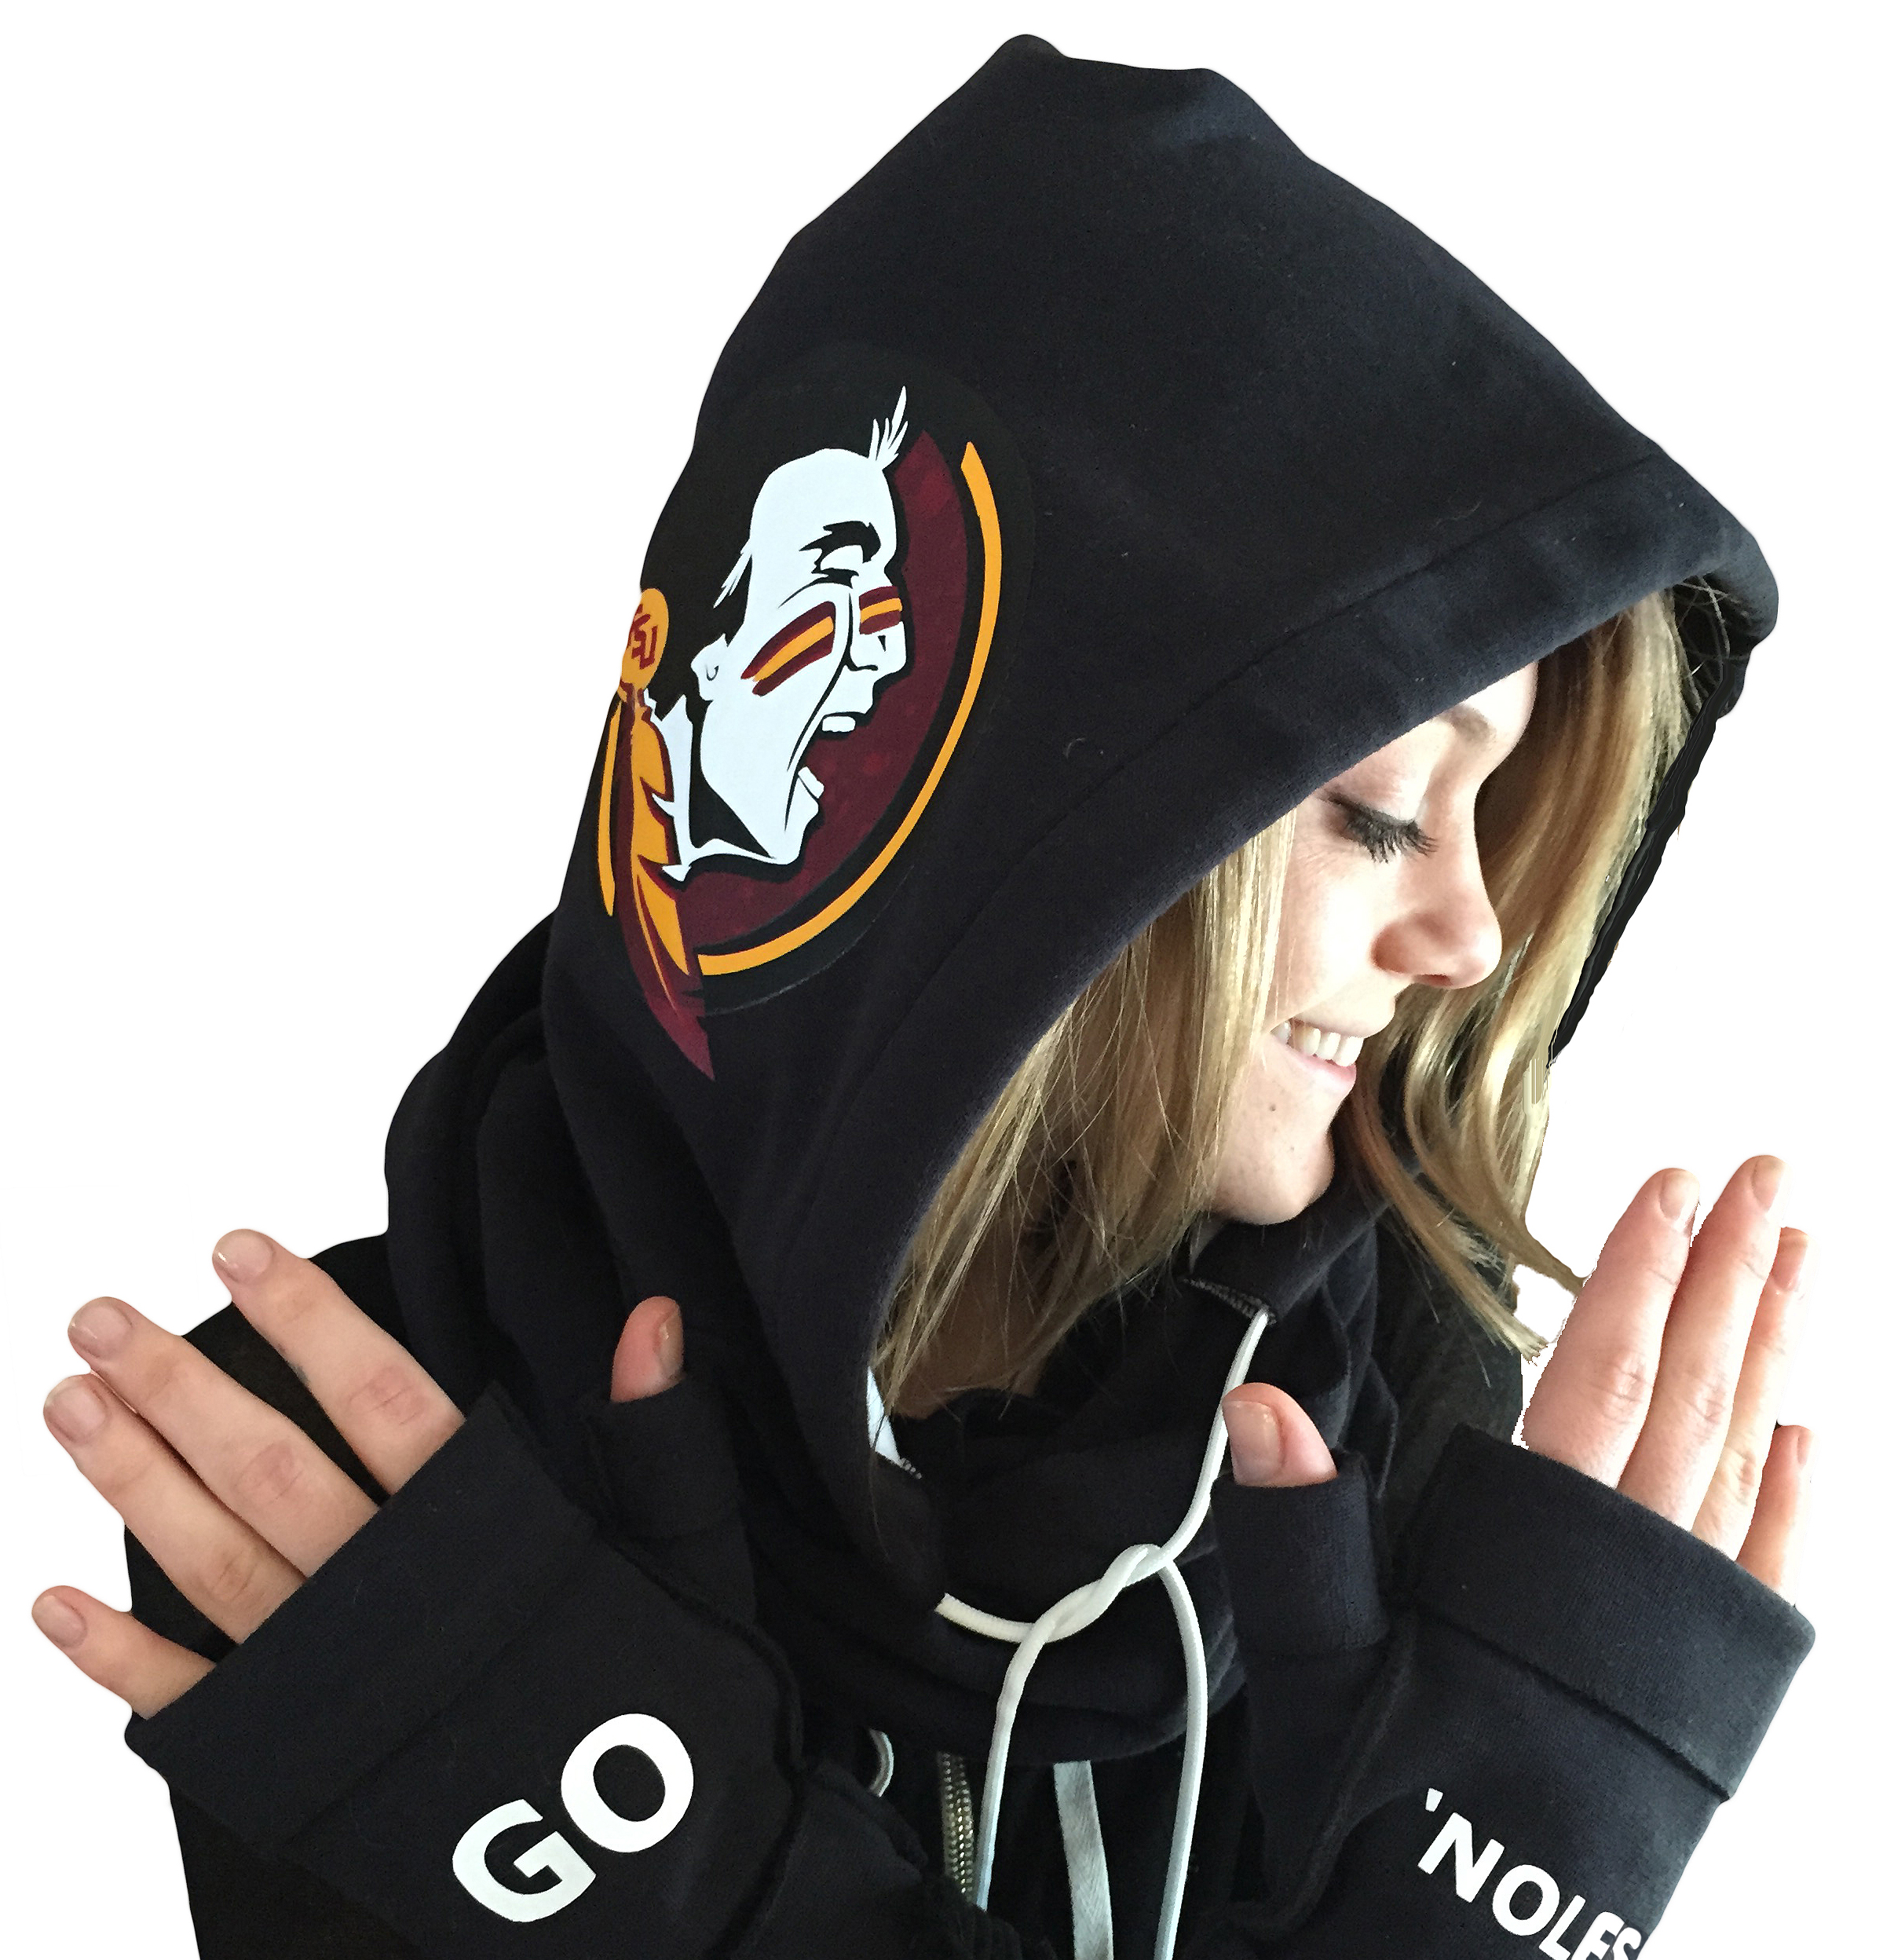 Be cool for your school! Our Team spirit HoodiSports collection can be customized in multiple colors and custom embroidery to make your statement!